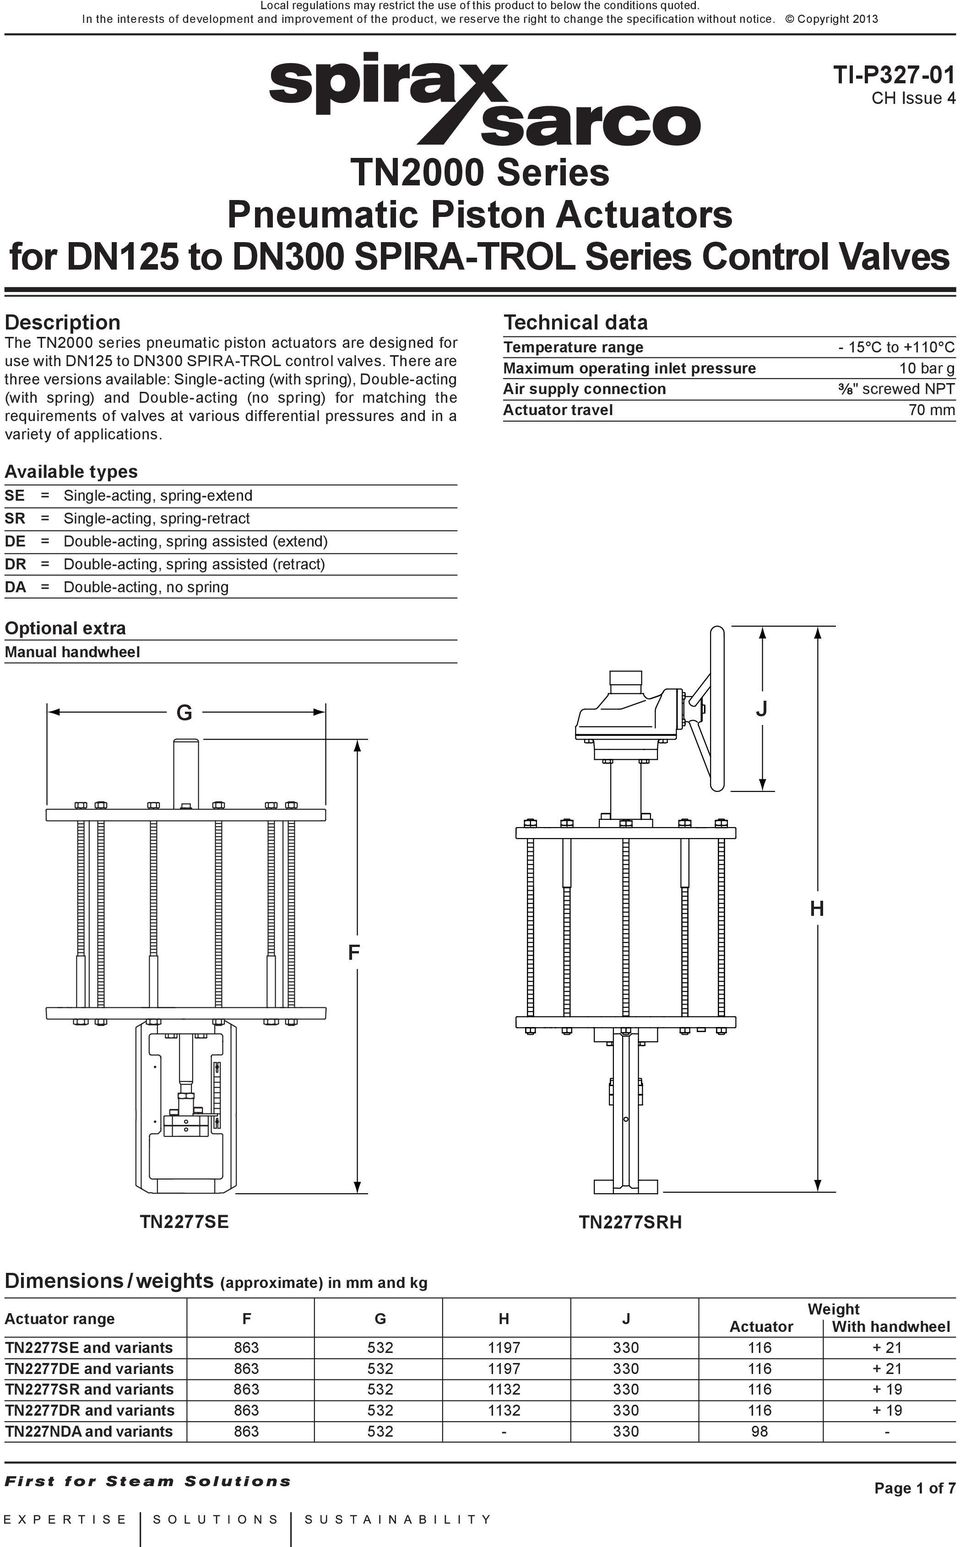 Copyright 2013 TI-P327-01 CH Issue 4 TN2000 Series Pneumatic Piston Actuators Description The TN2000 series pneumatic piston actuators are designed for use with DN125 to DN300 SPIRA-TROL control